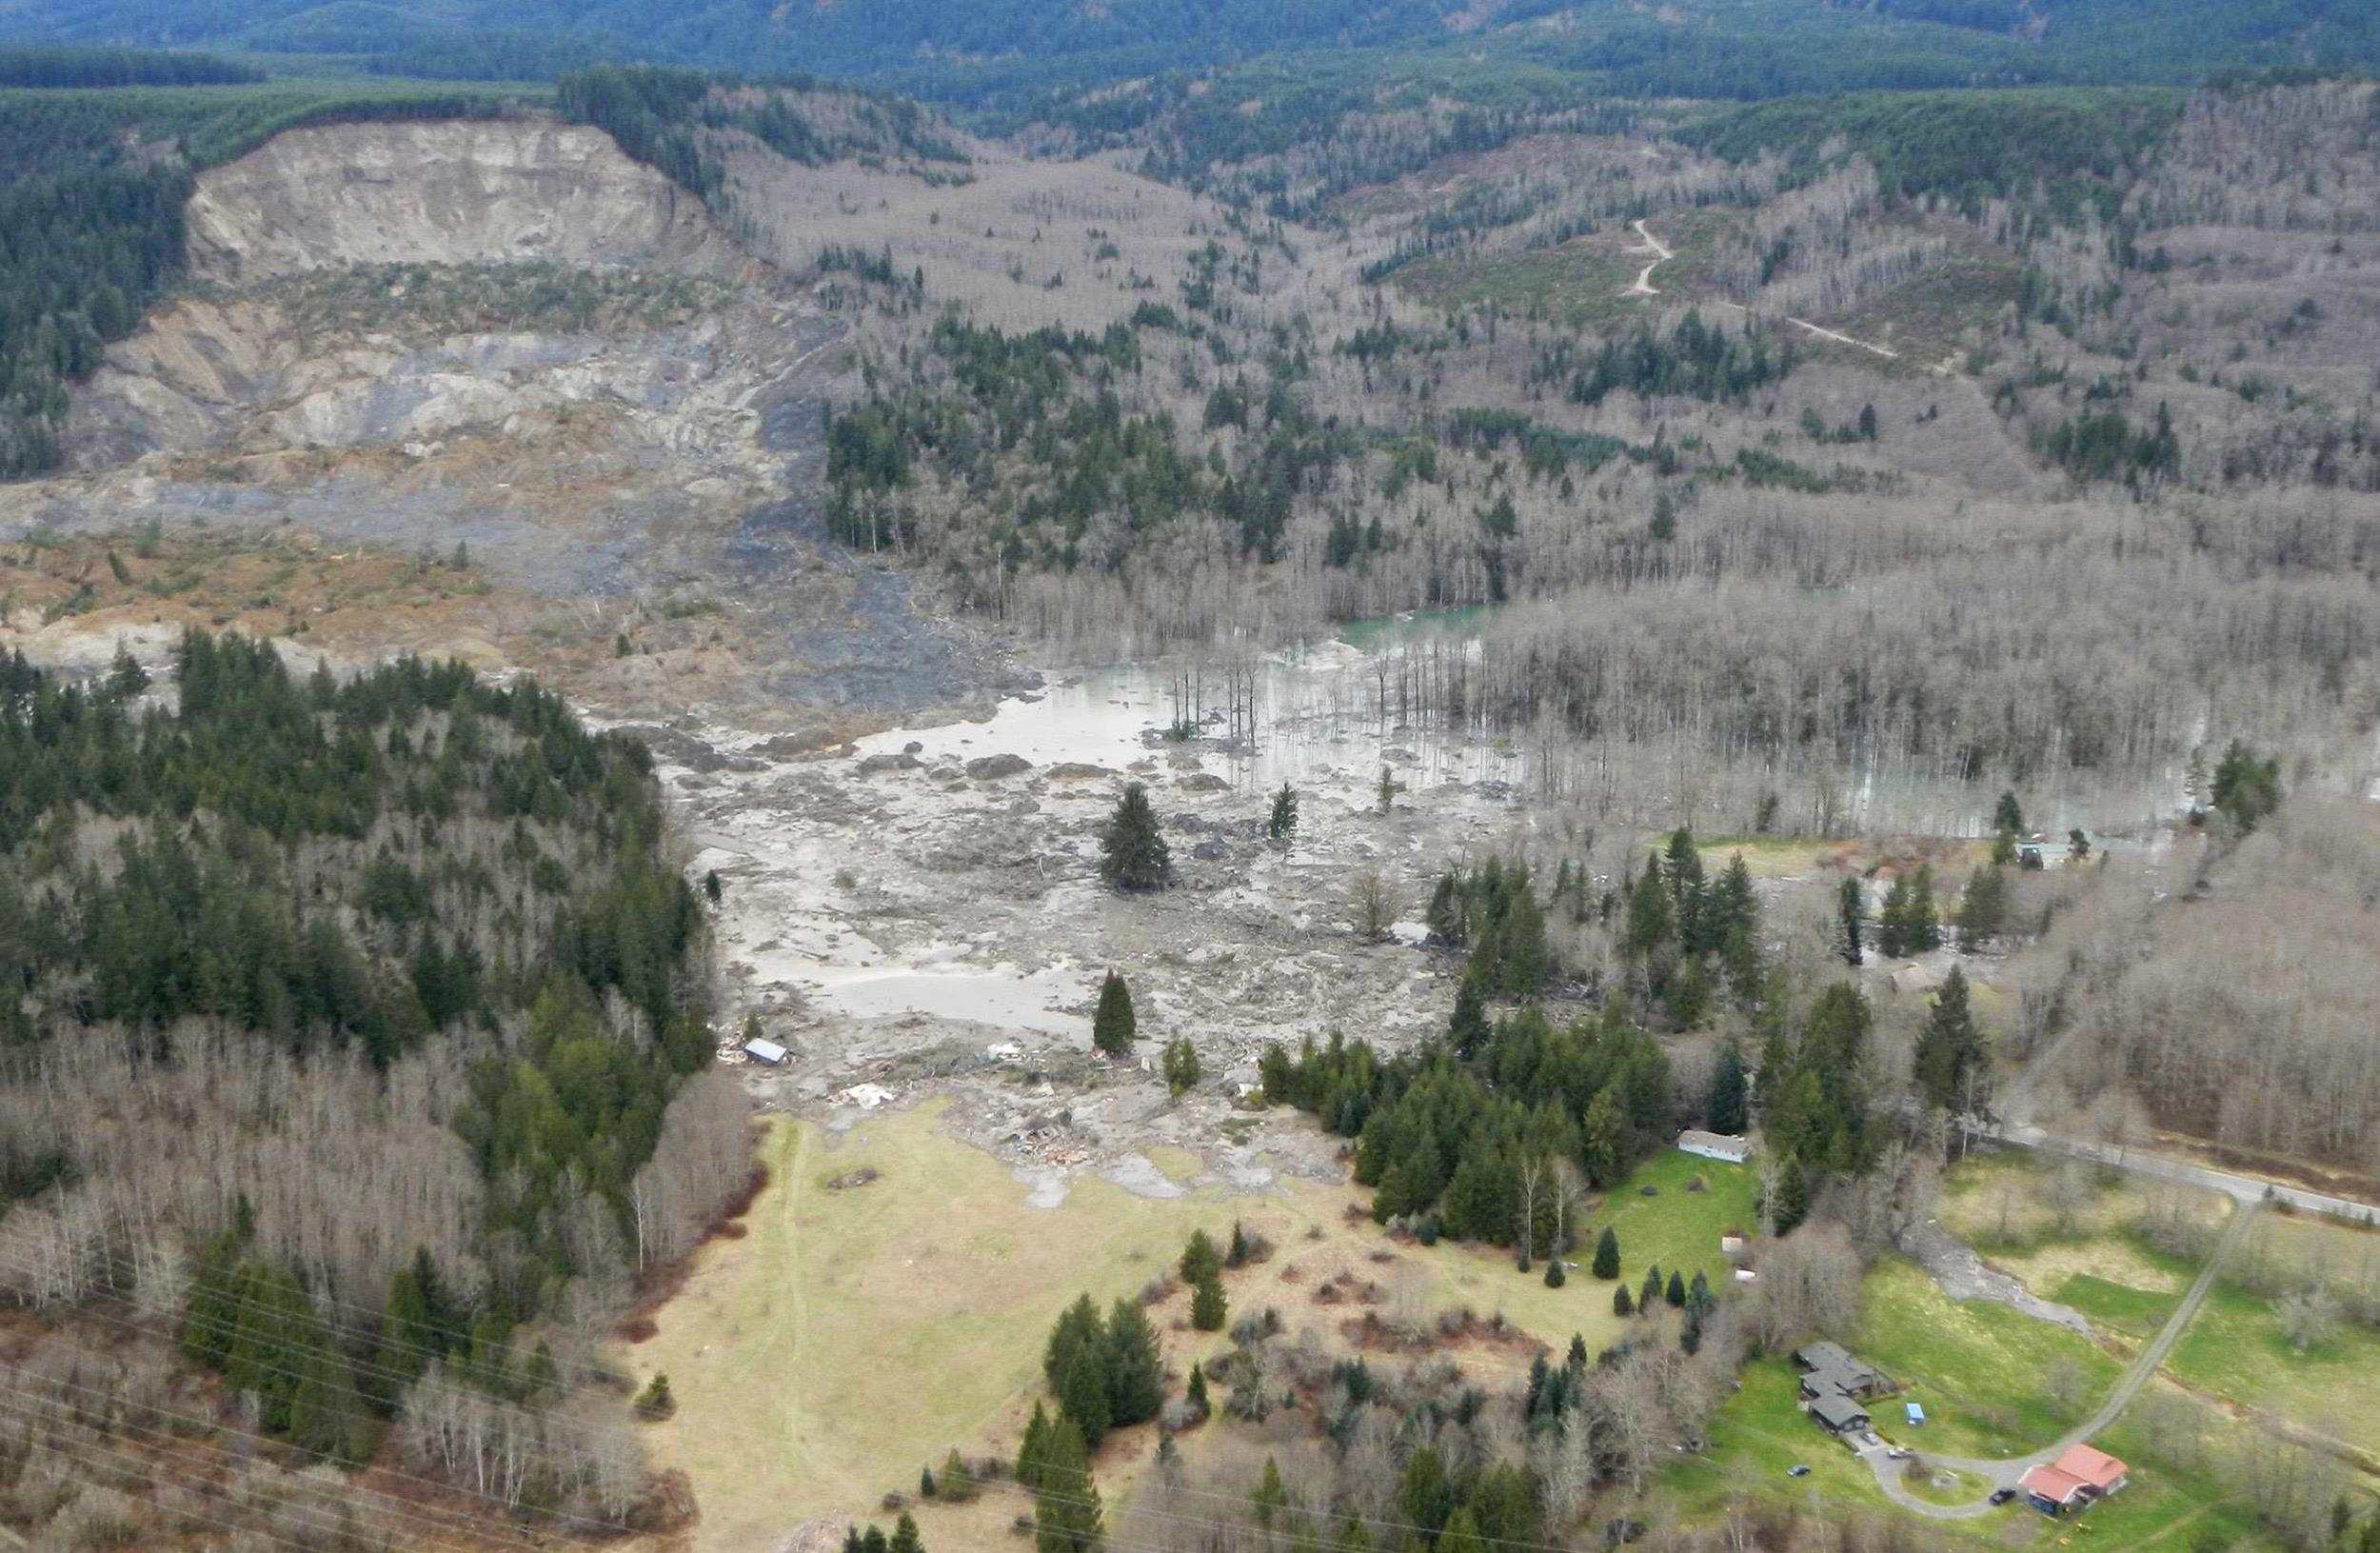 Image: A general view of the area affected by a landslide near Oso, Washington